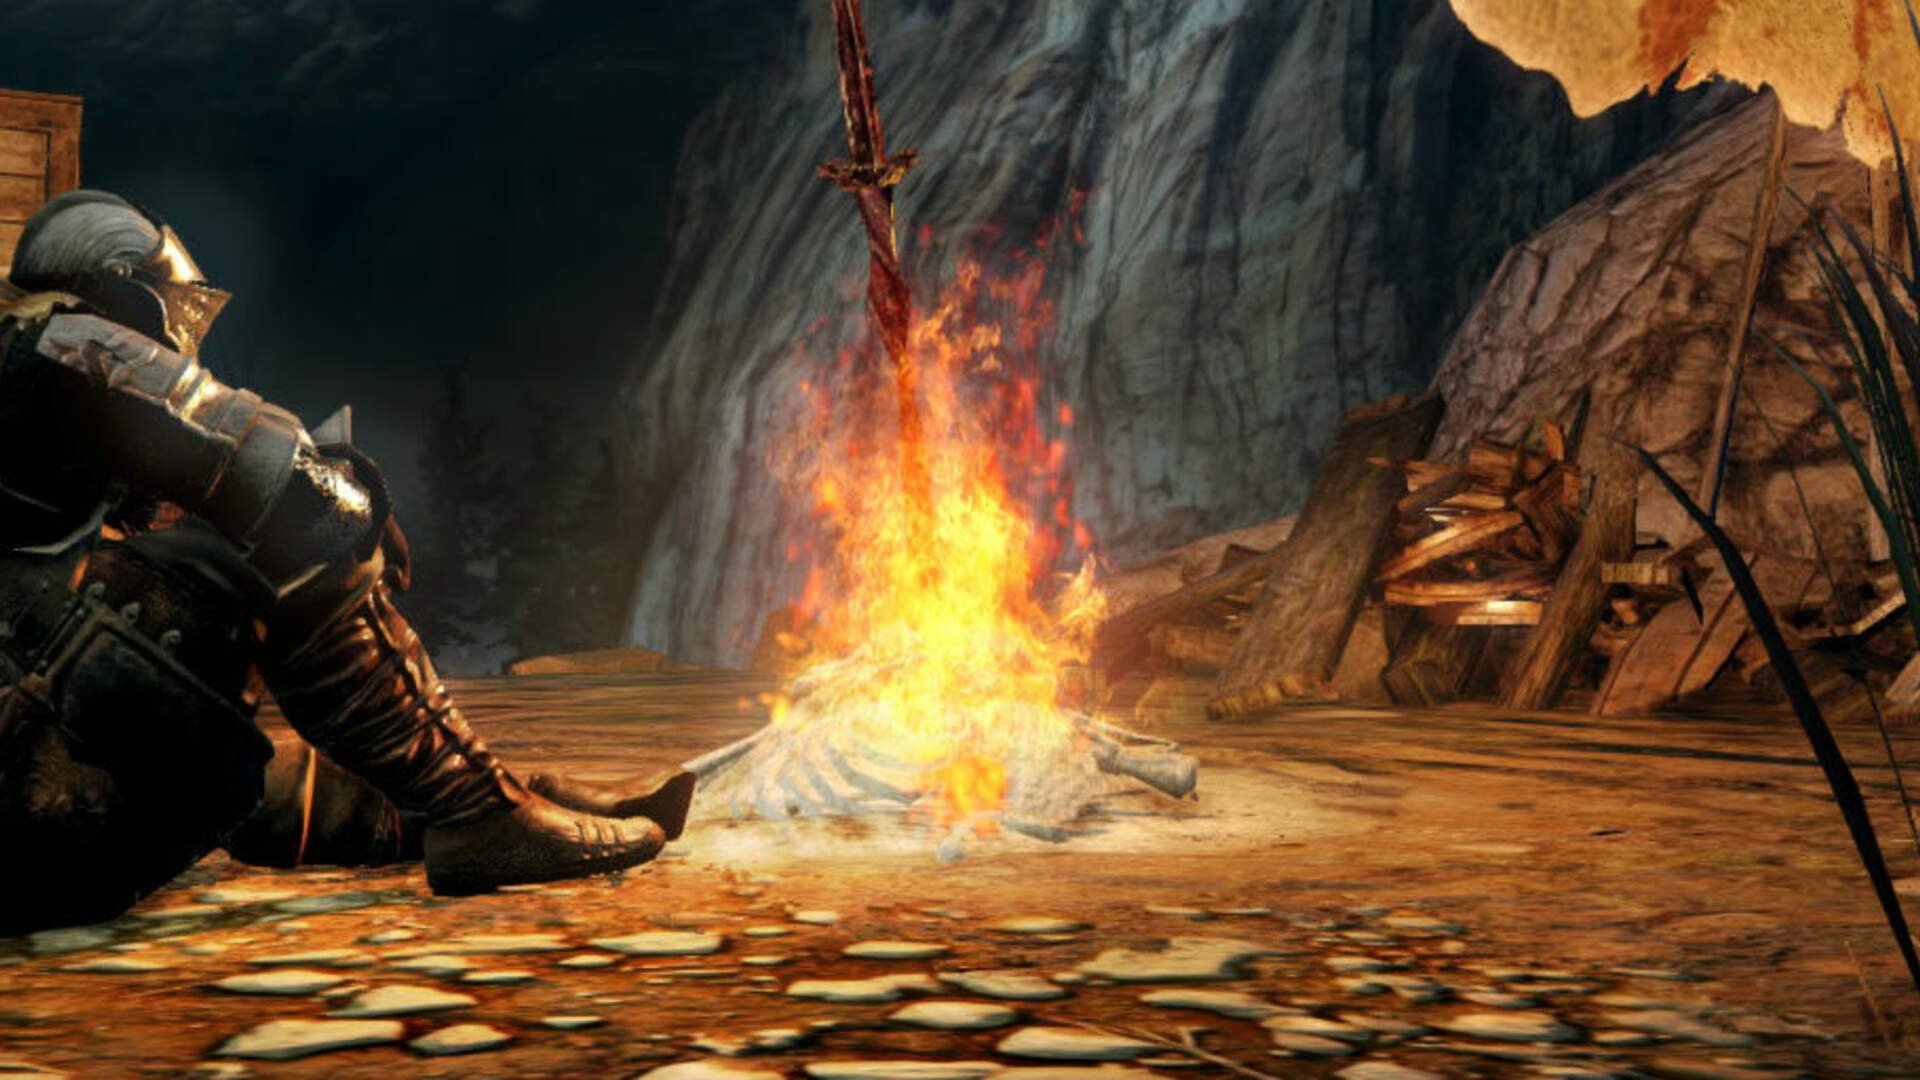 Dark Souls 2: Screenshots, Videos, and Everything Else You Wanted Spoiled for You